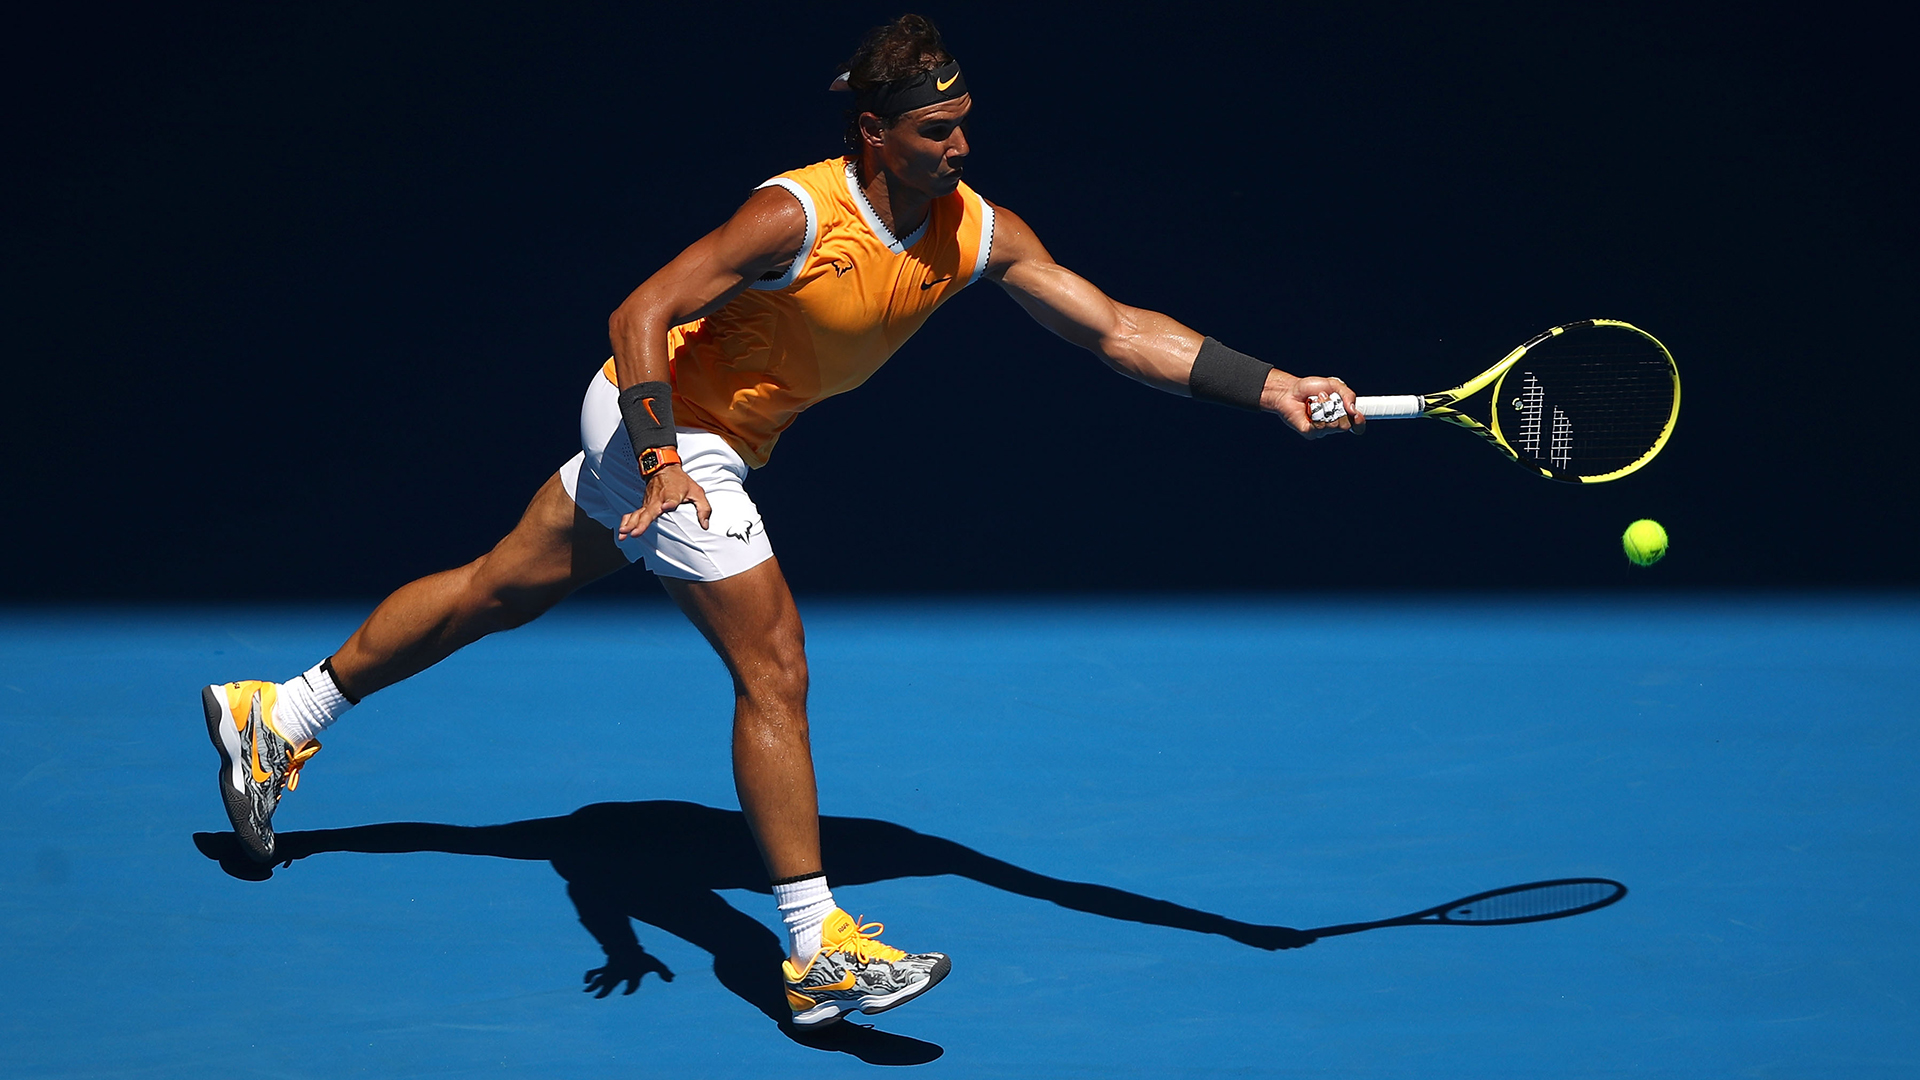 Rafael Nadal Twitter: Australia Open: Rafael Nadal Too Good For James Duckworth